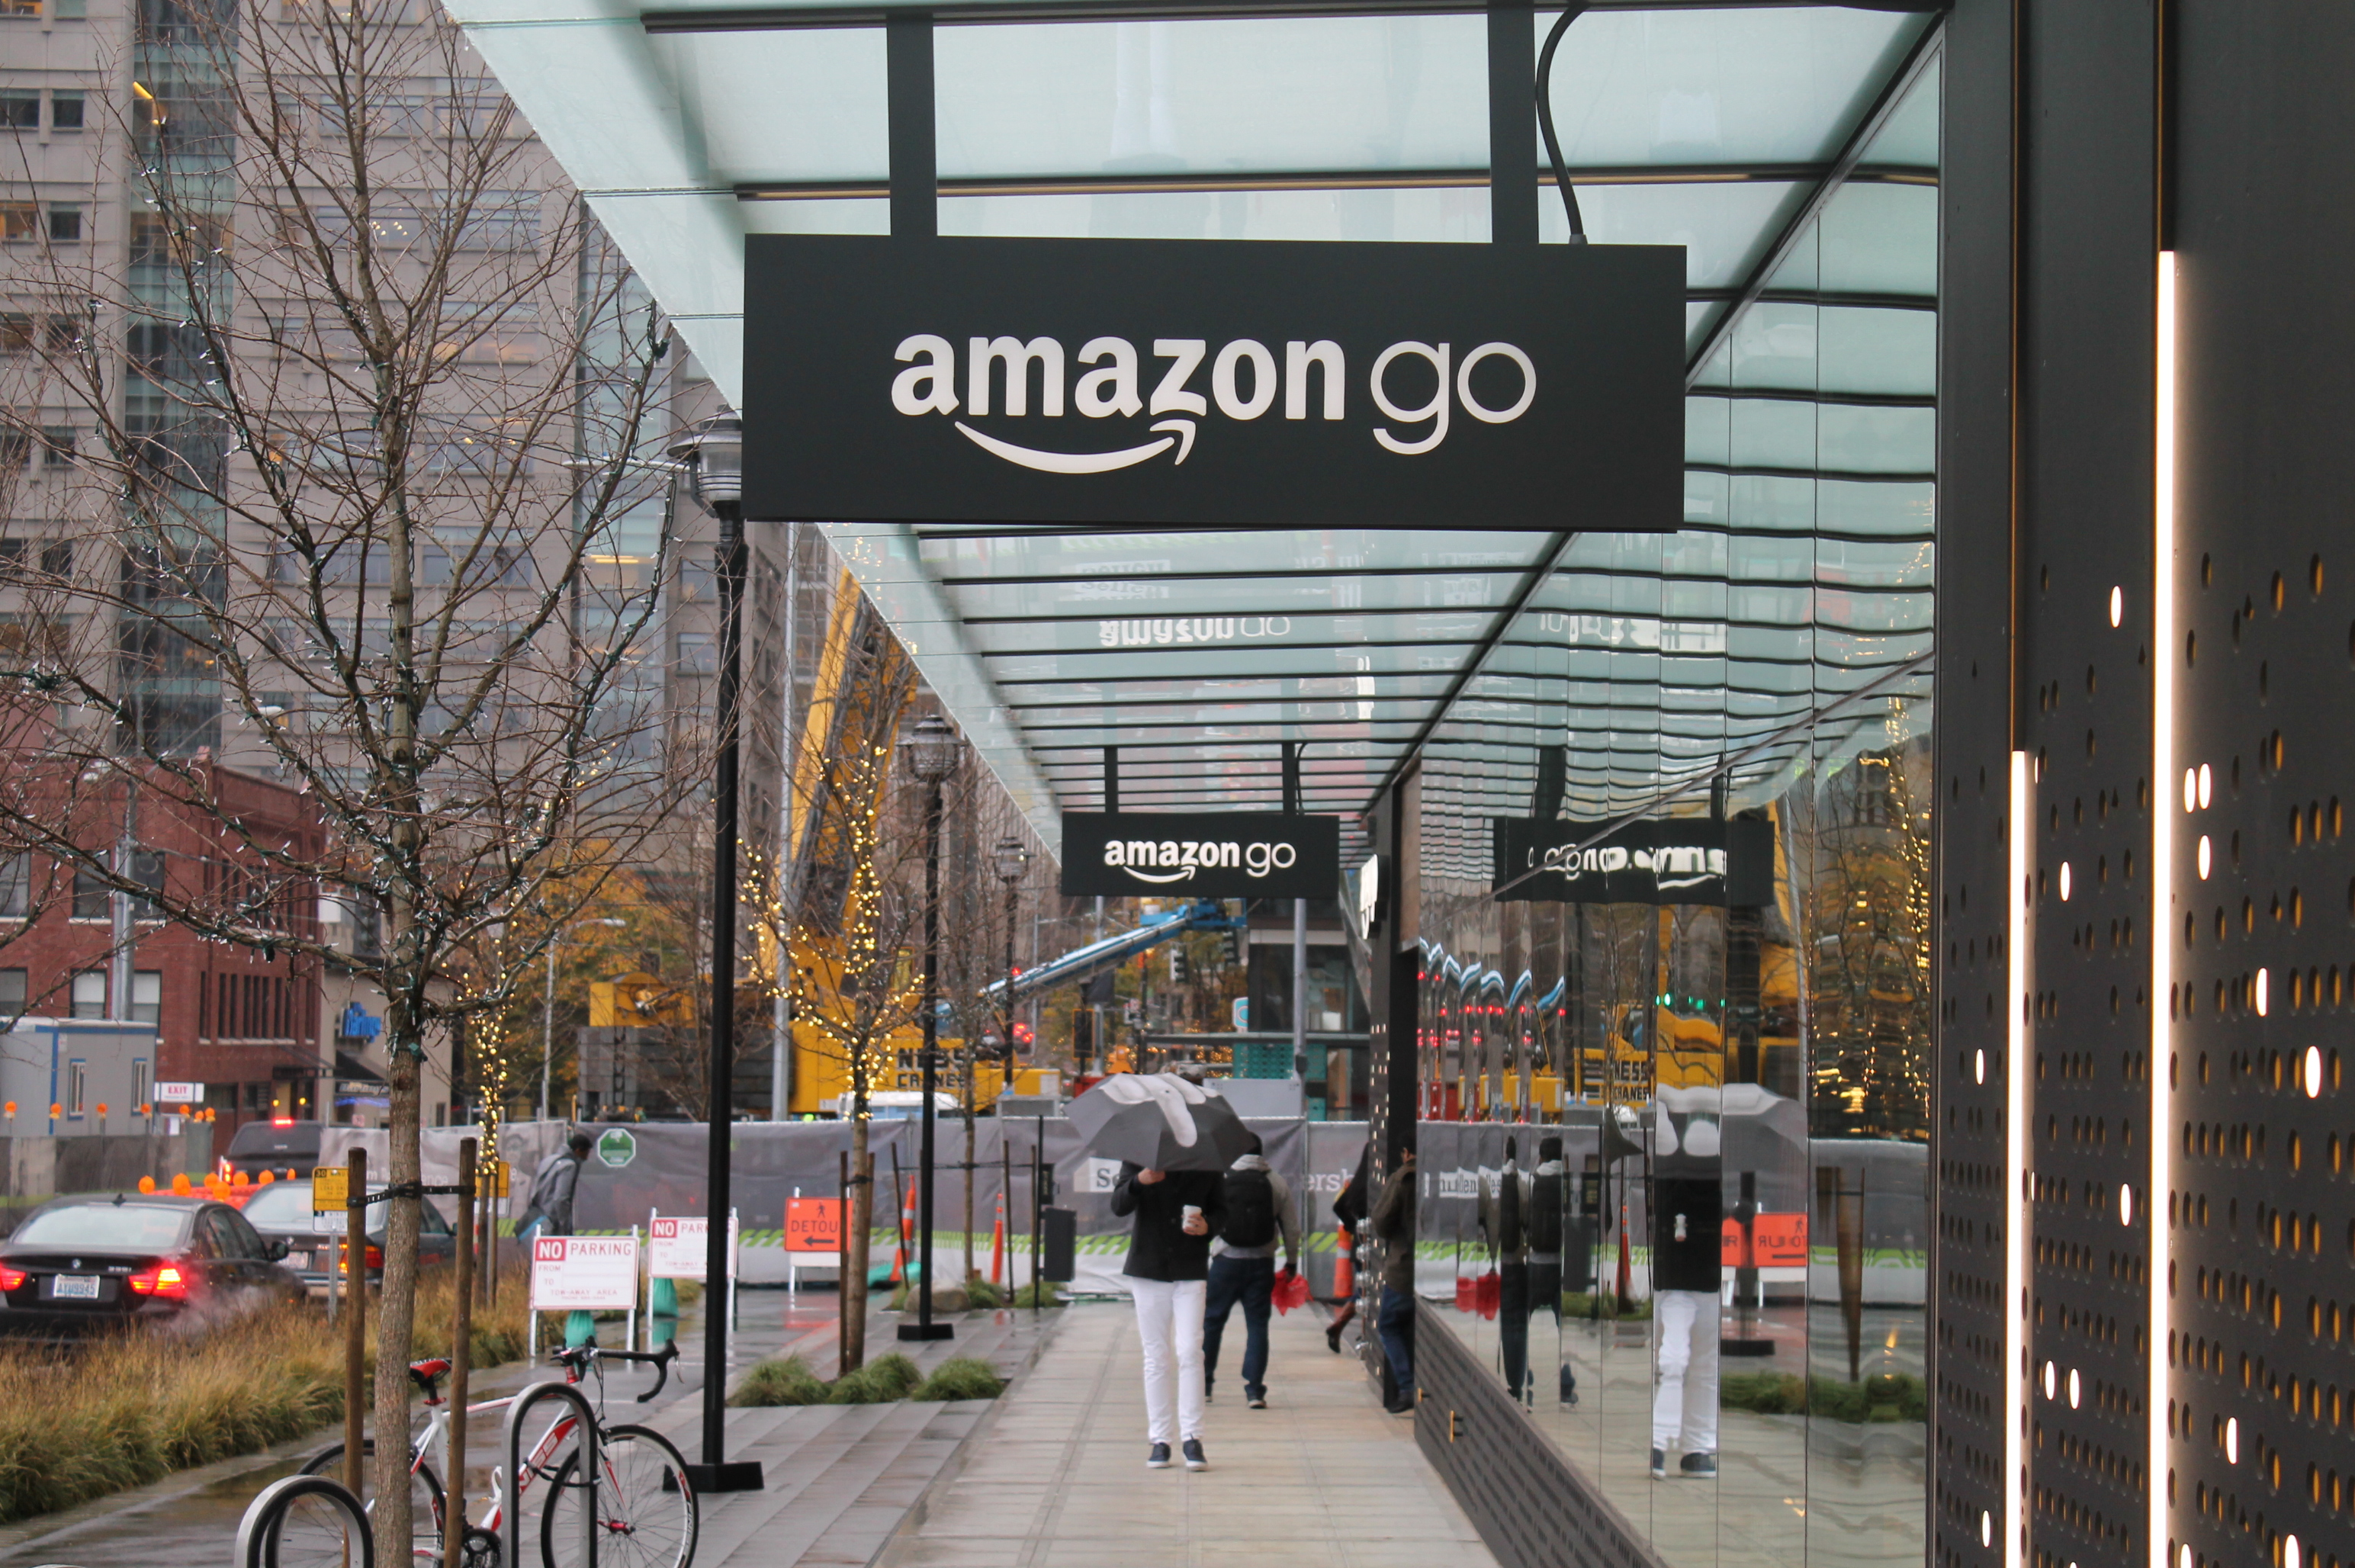 How Amazon Go Works The Technology Behind The Online